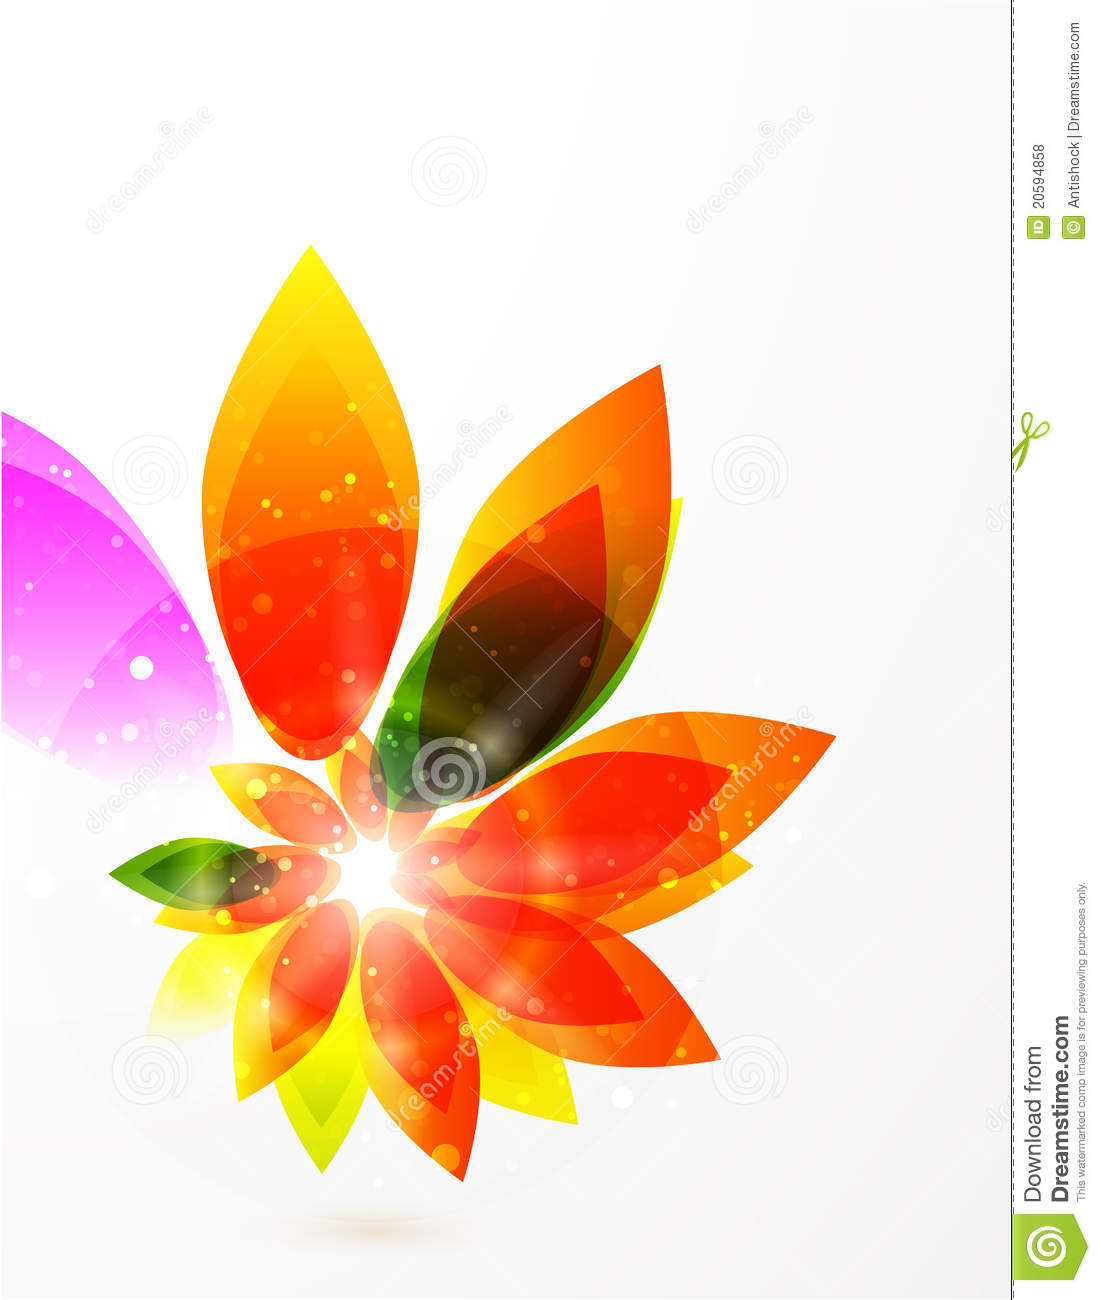 flower girl vector abstract - photo #28